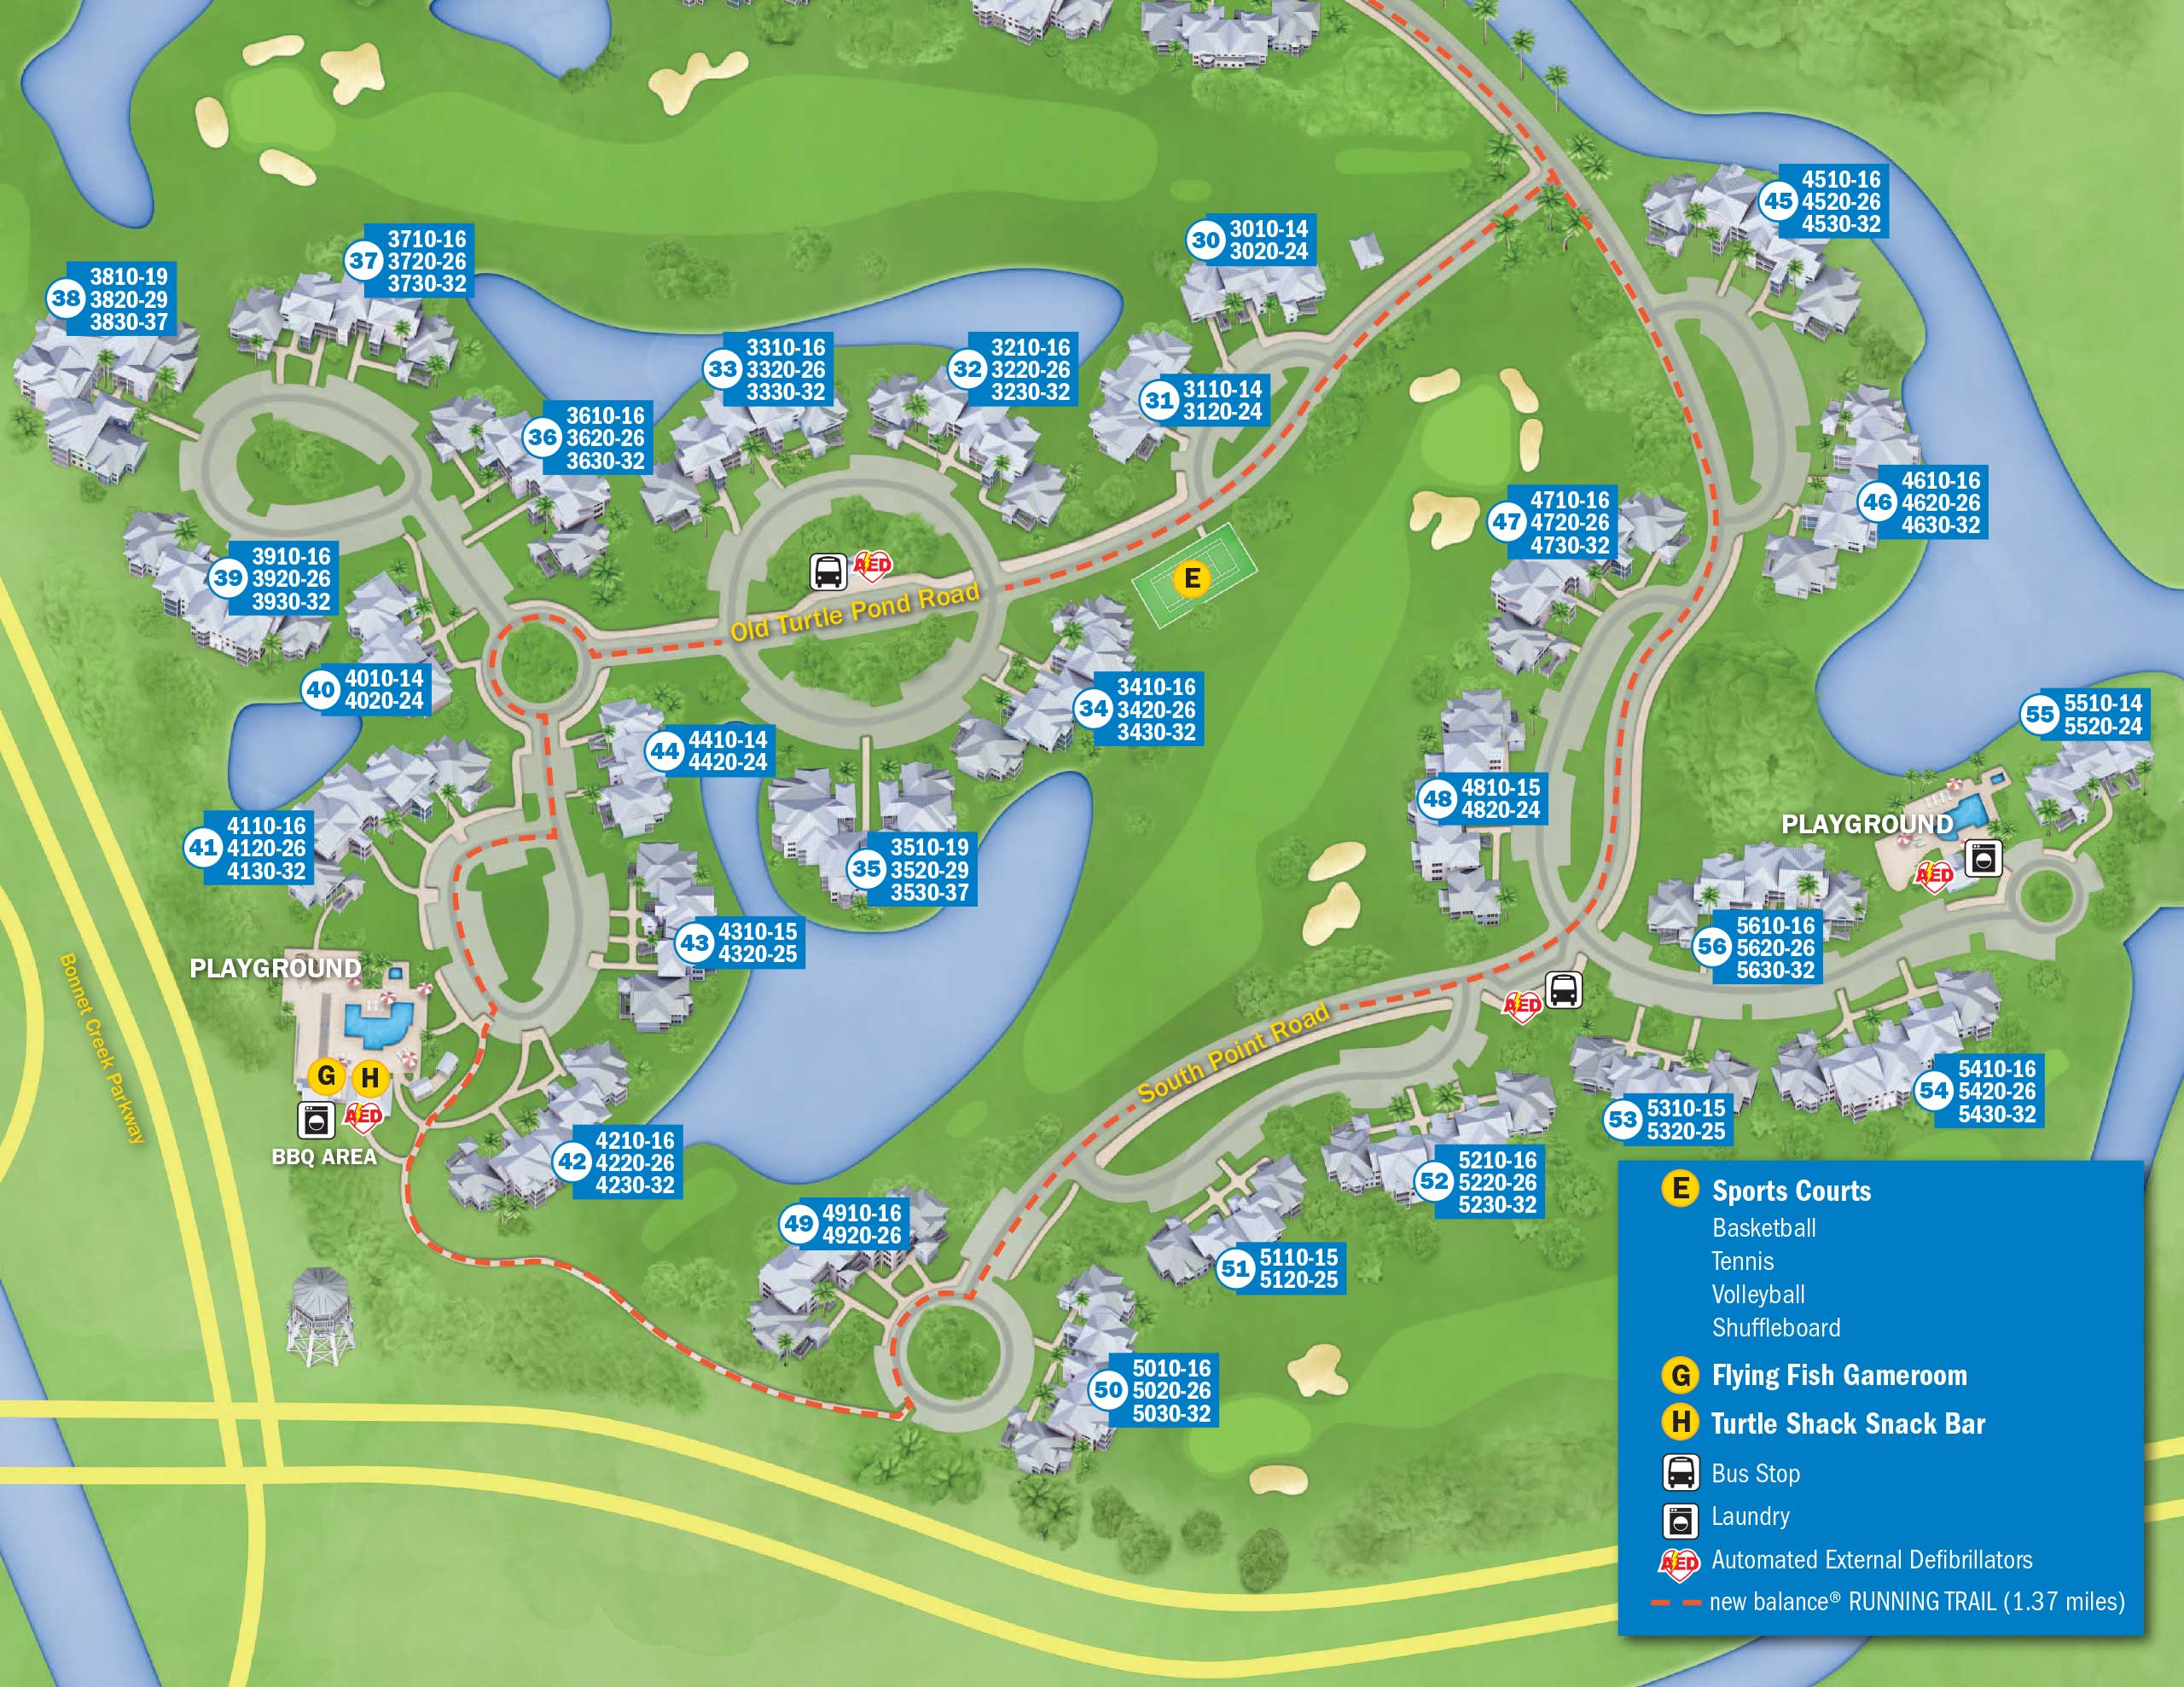 April 2017 Walt Disney World Resort Hotel Maps   Photo 28 of 33